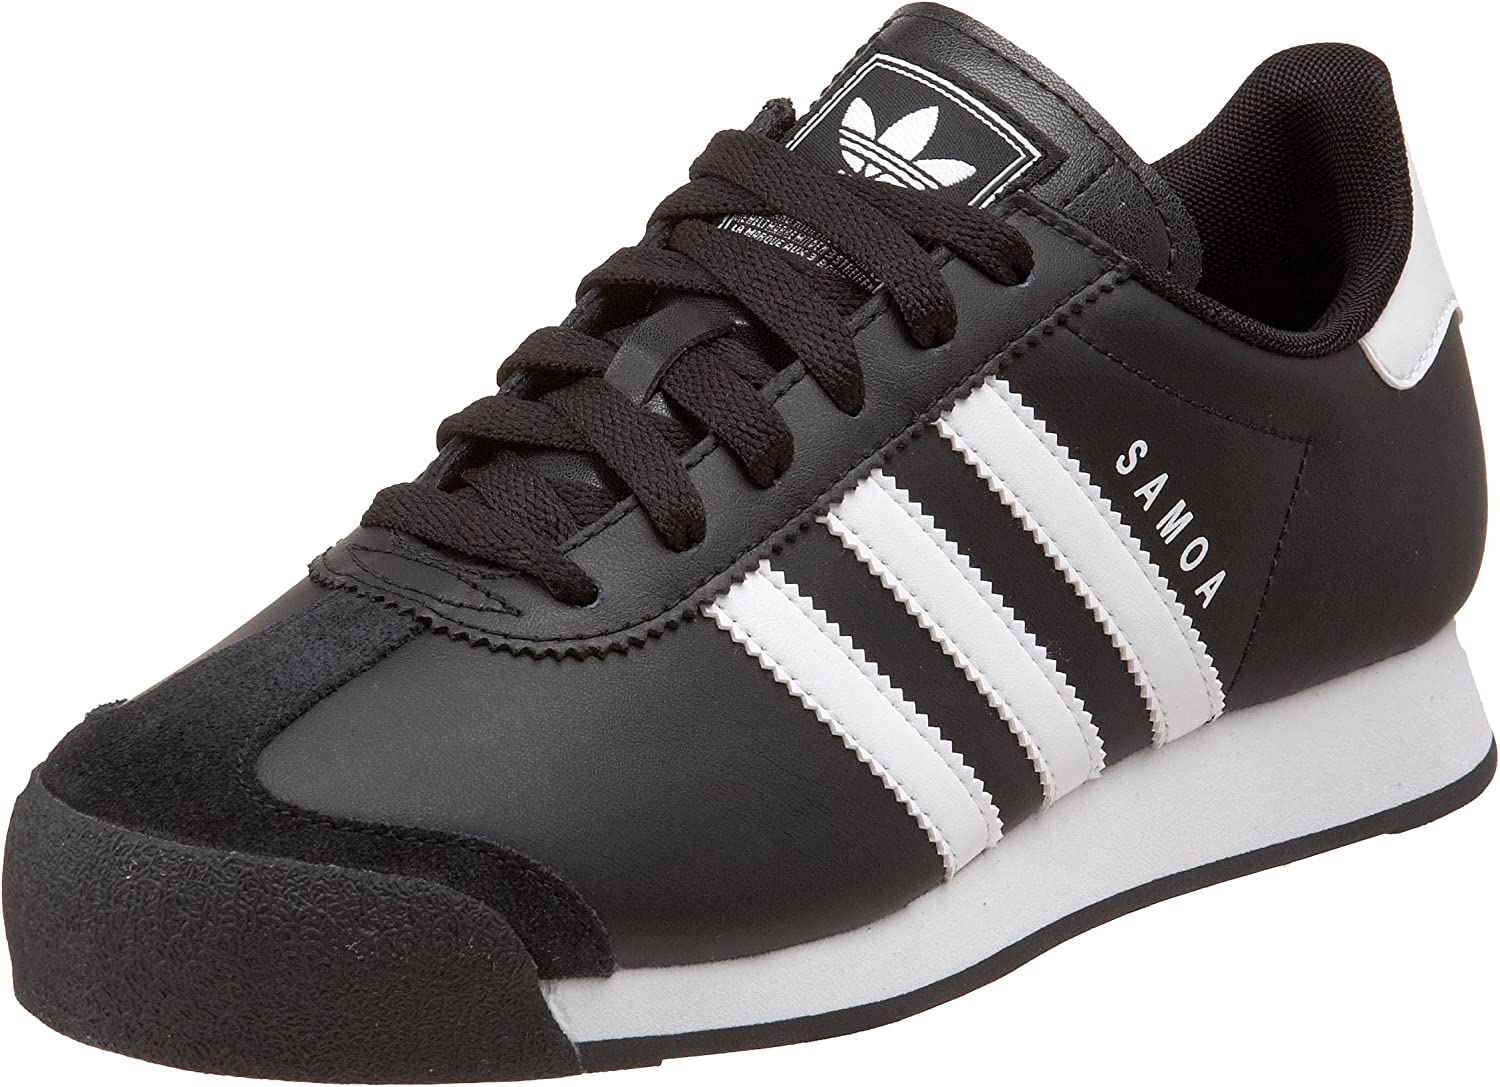 adidas Originals Samoa Sneaker Little Kid//Big Kid